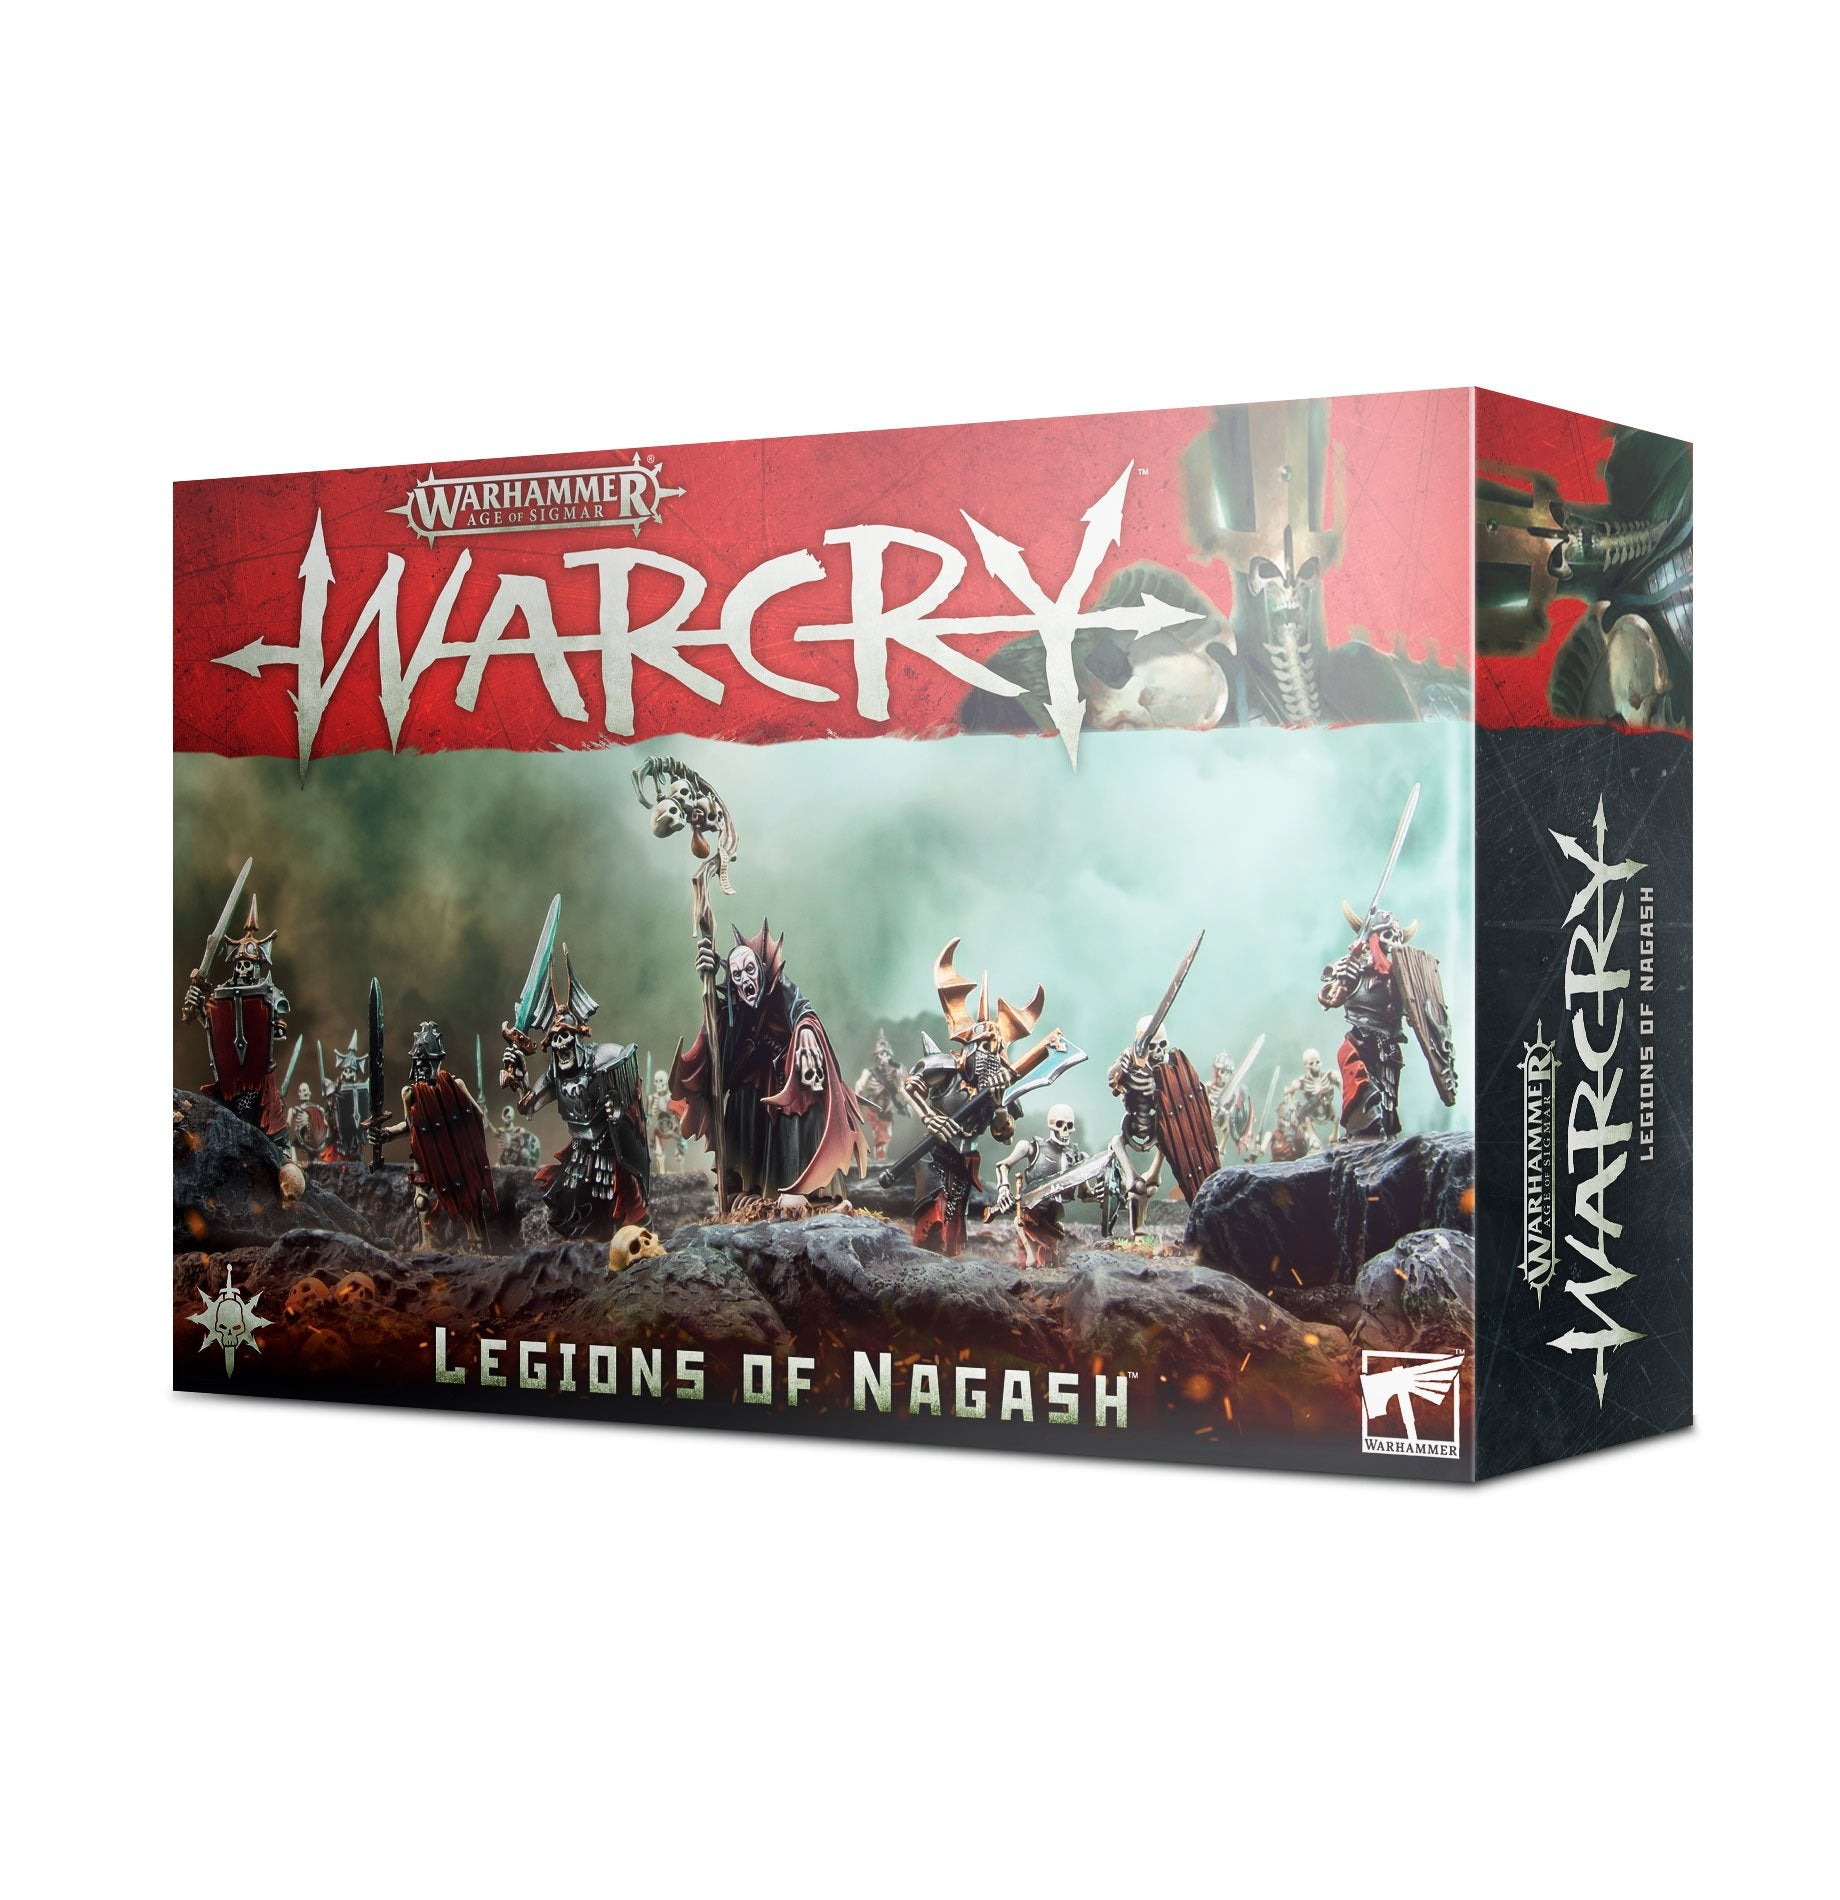 Warcry: Legions of Nagash | Out of the Box Gaming